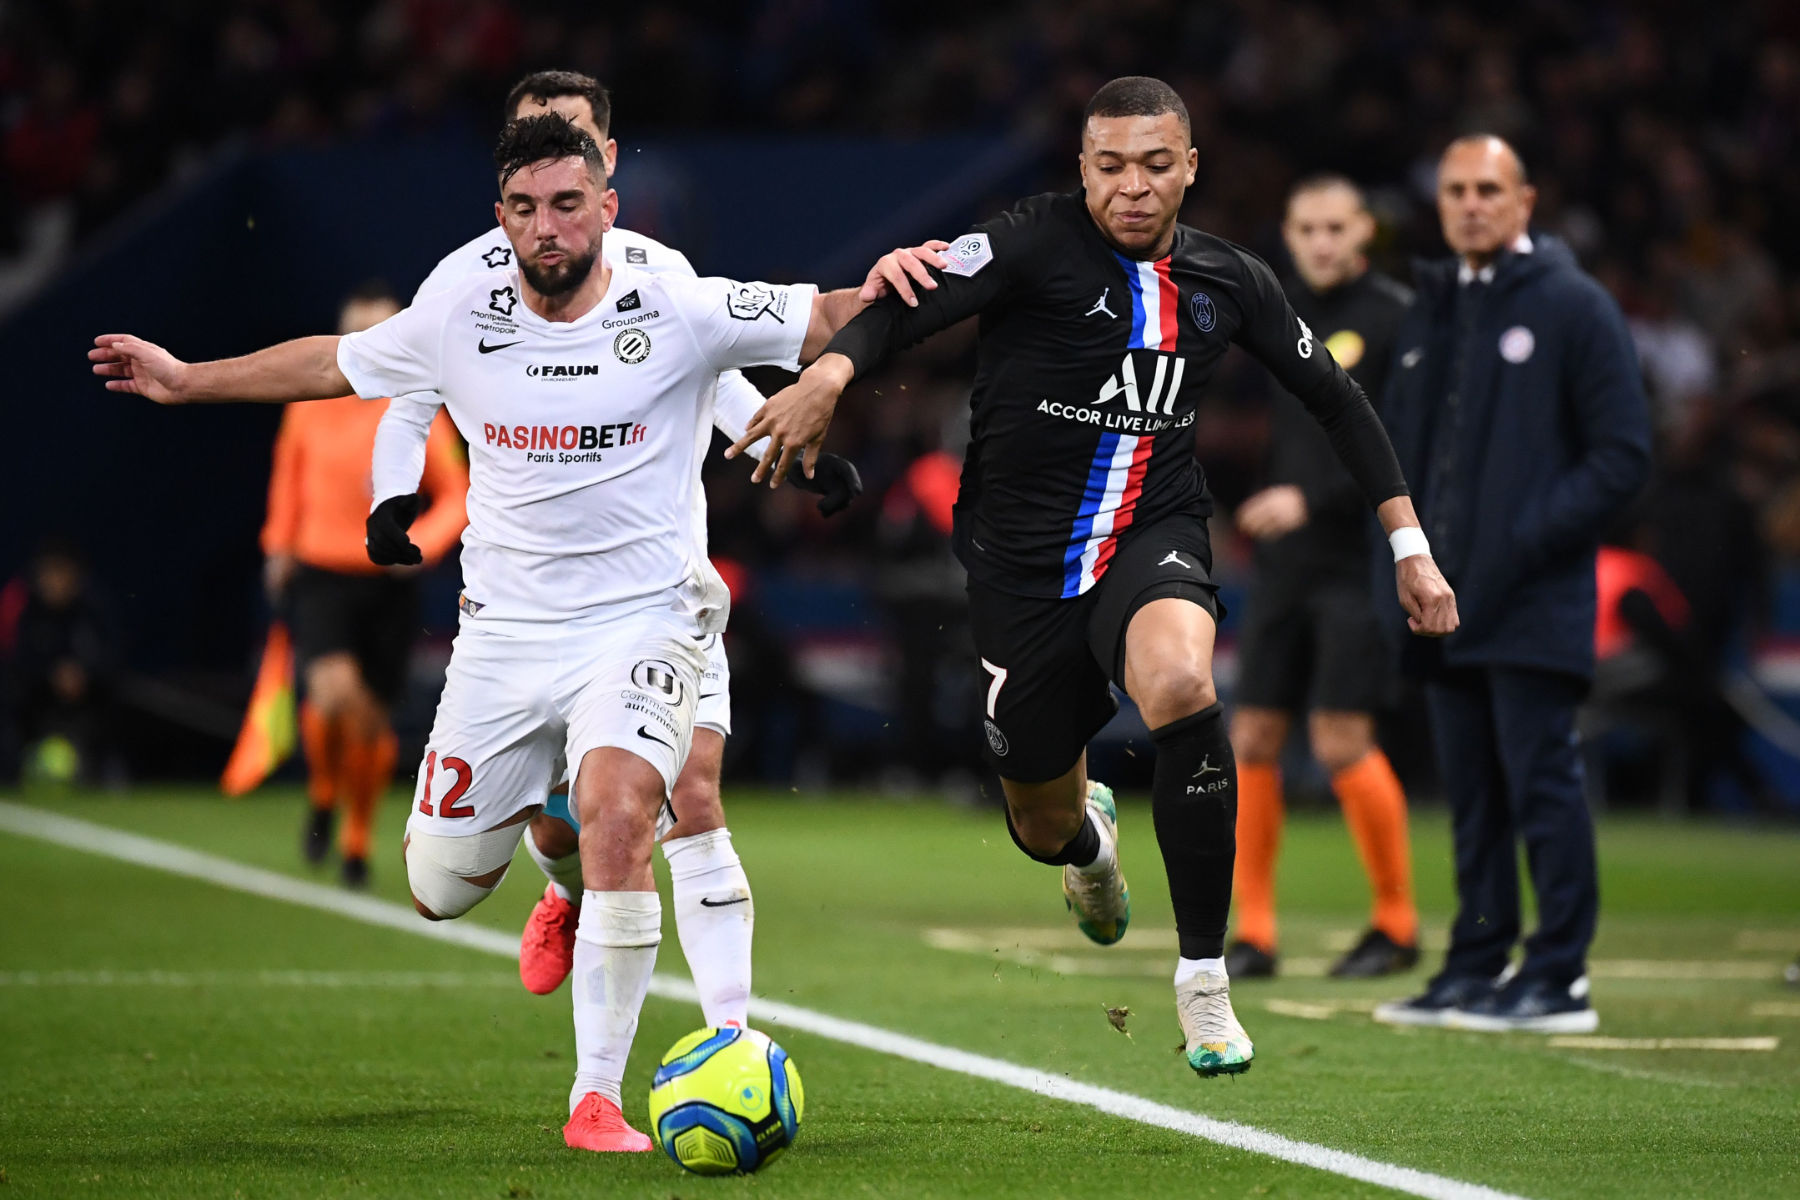 PSG vs Montpellier LIVE in Ligue 1: Will Lionel Messi return from injury as Pochettino aims to continue winning streak? PSG vs MON live streaming, follow for live updates